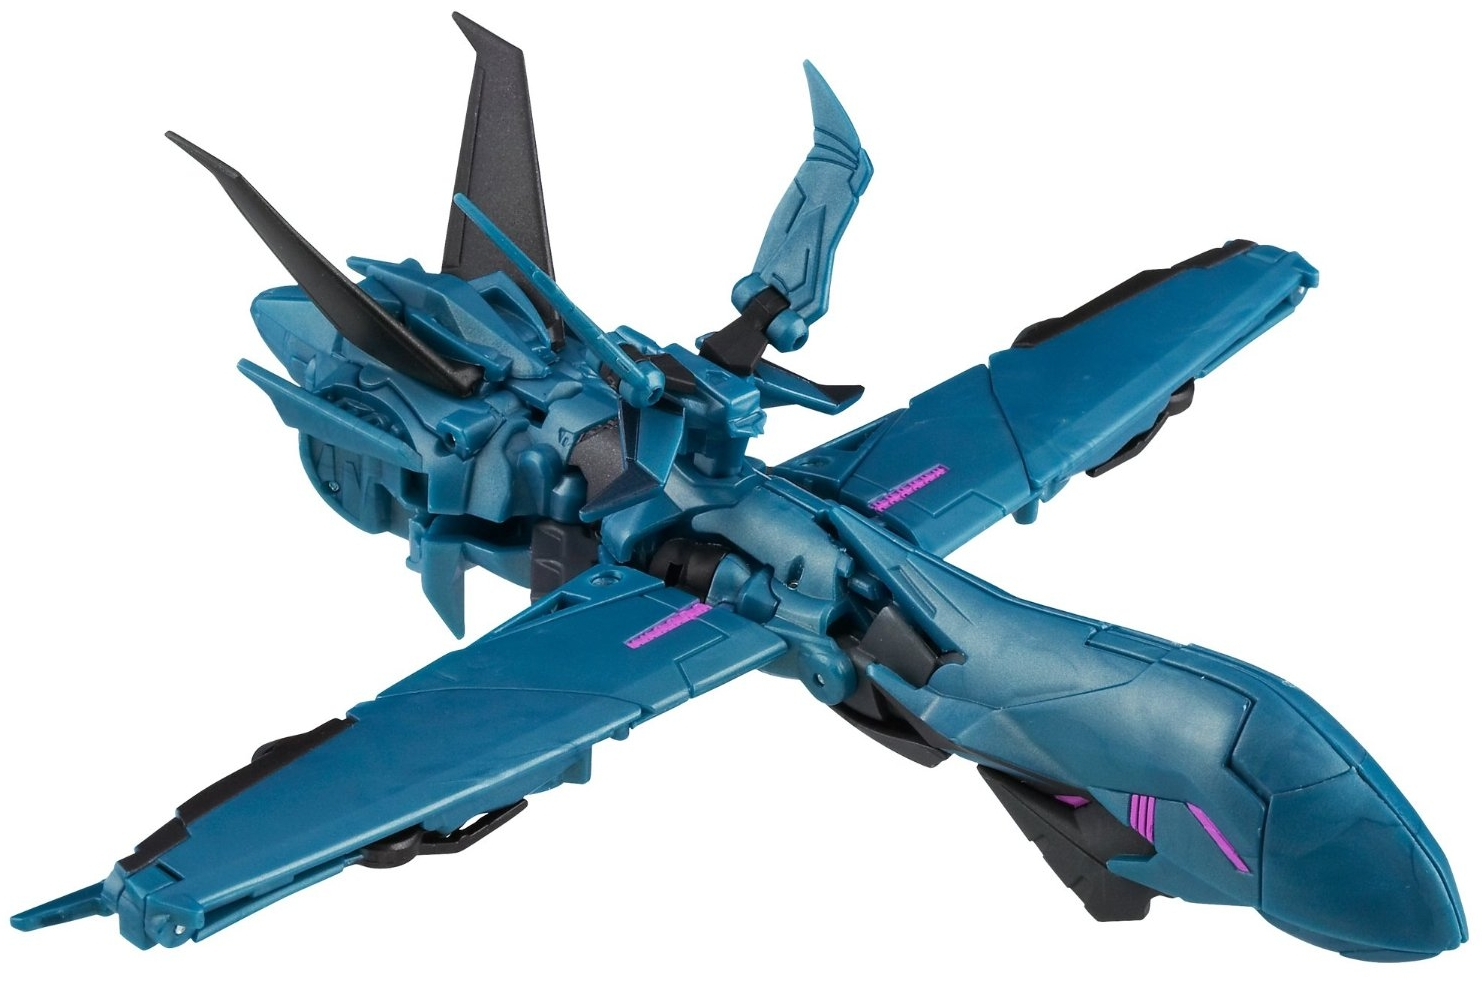 drone under with Soundwave With Laserbeak 5268 on Soundwave With Laserbeak 5268 besides 2016 Honda Civic Ex Sedan Review also File Md 12 2 additionally 7 Tips For Malaria Prevention additionally Watch.